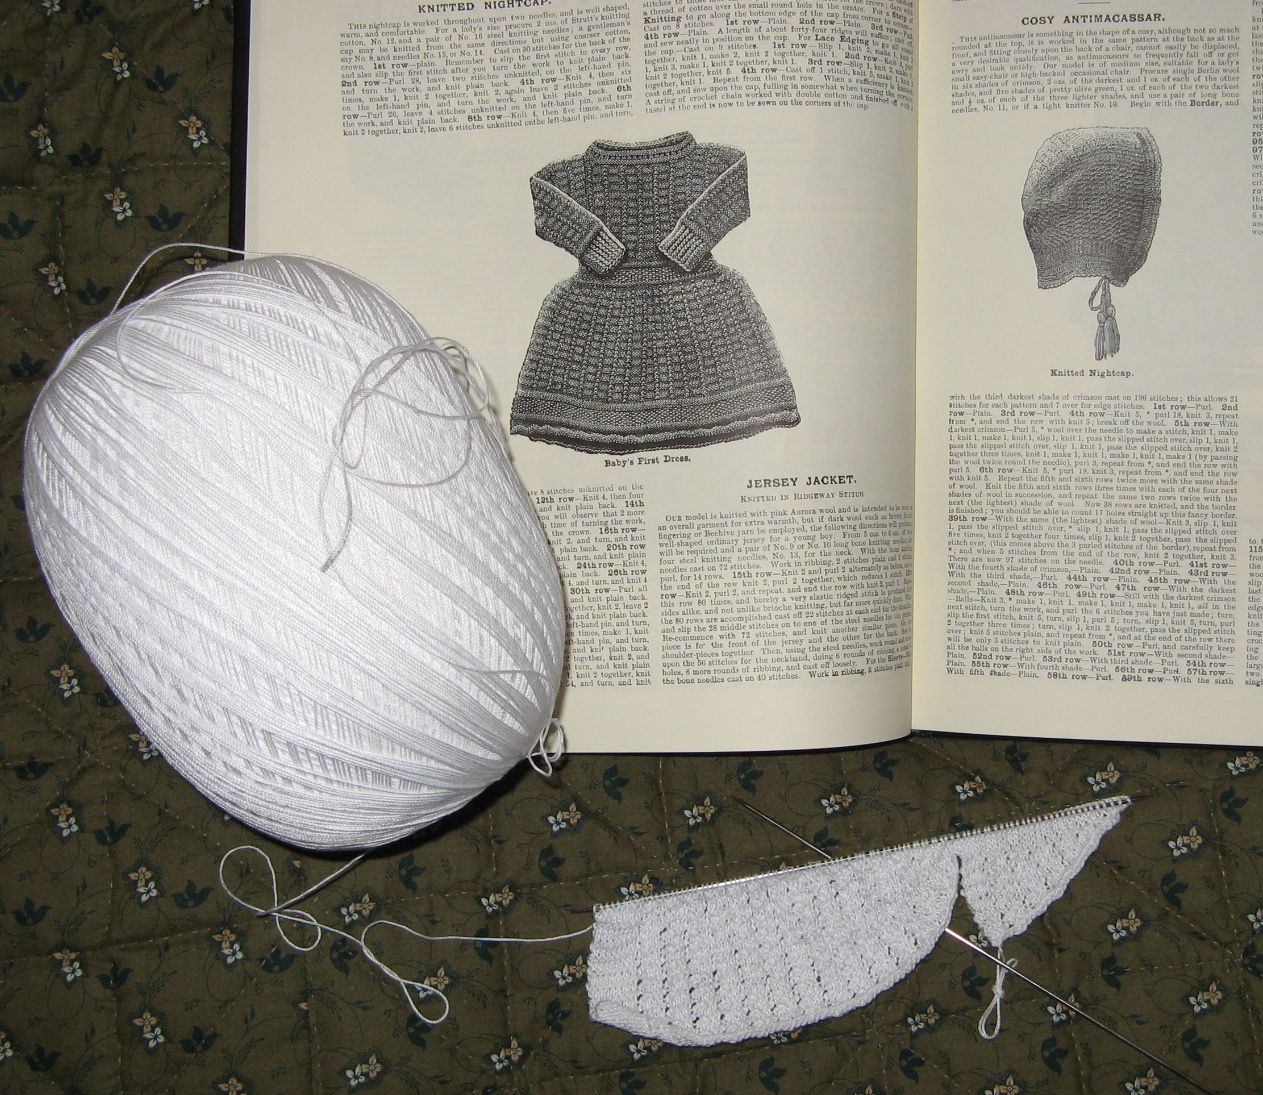 Easy Scarf Patterns To Knit : One More Stitch: Knitted Nightcap from Weldon s